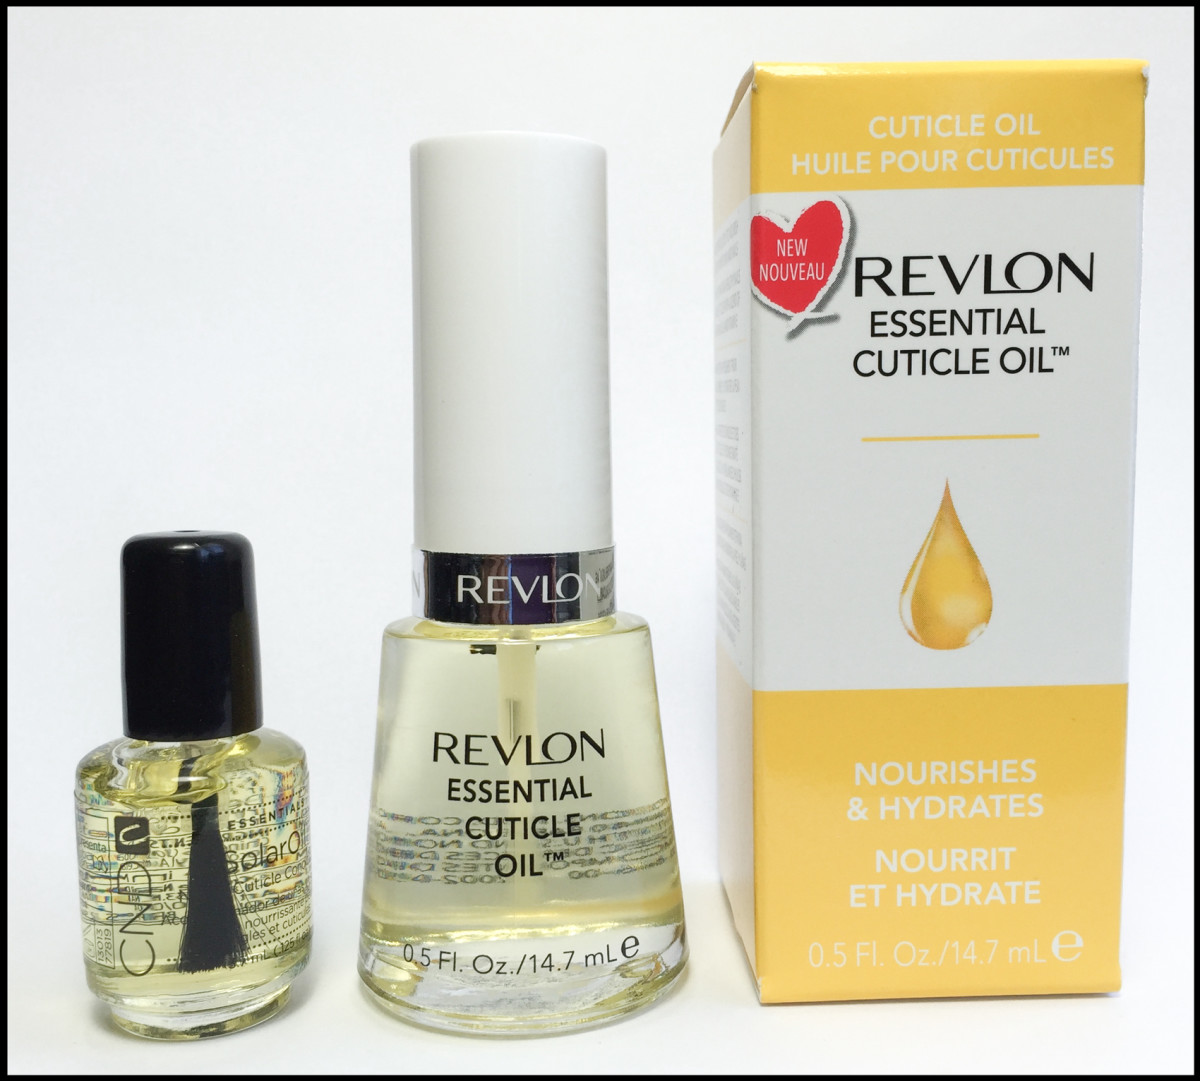 Revlon Essential Cuticle Oil vs CND Solar Oil